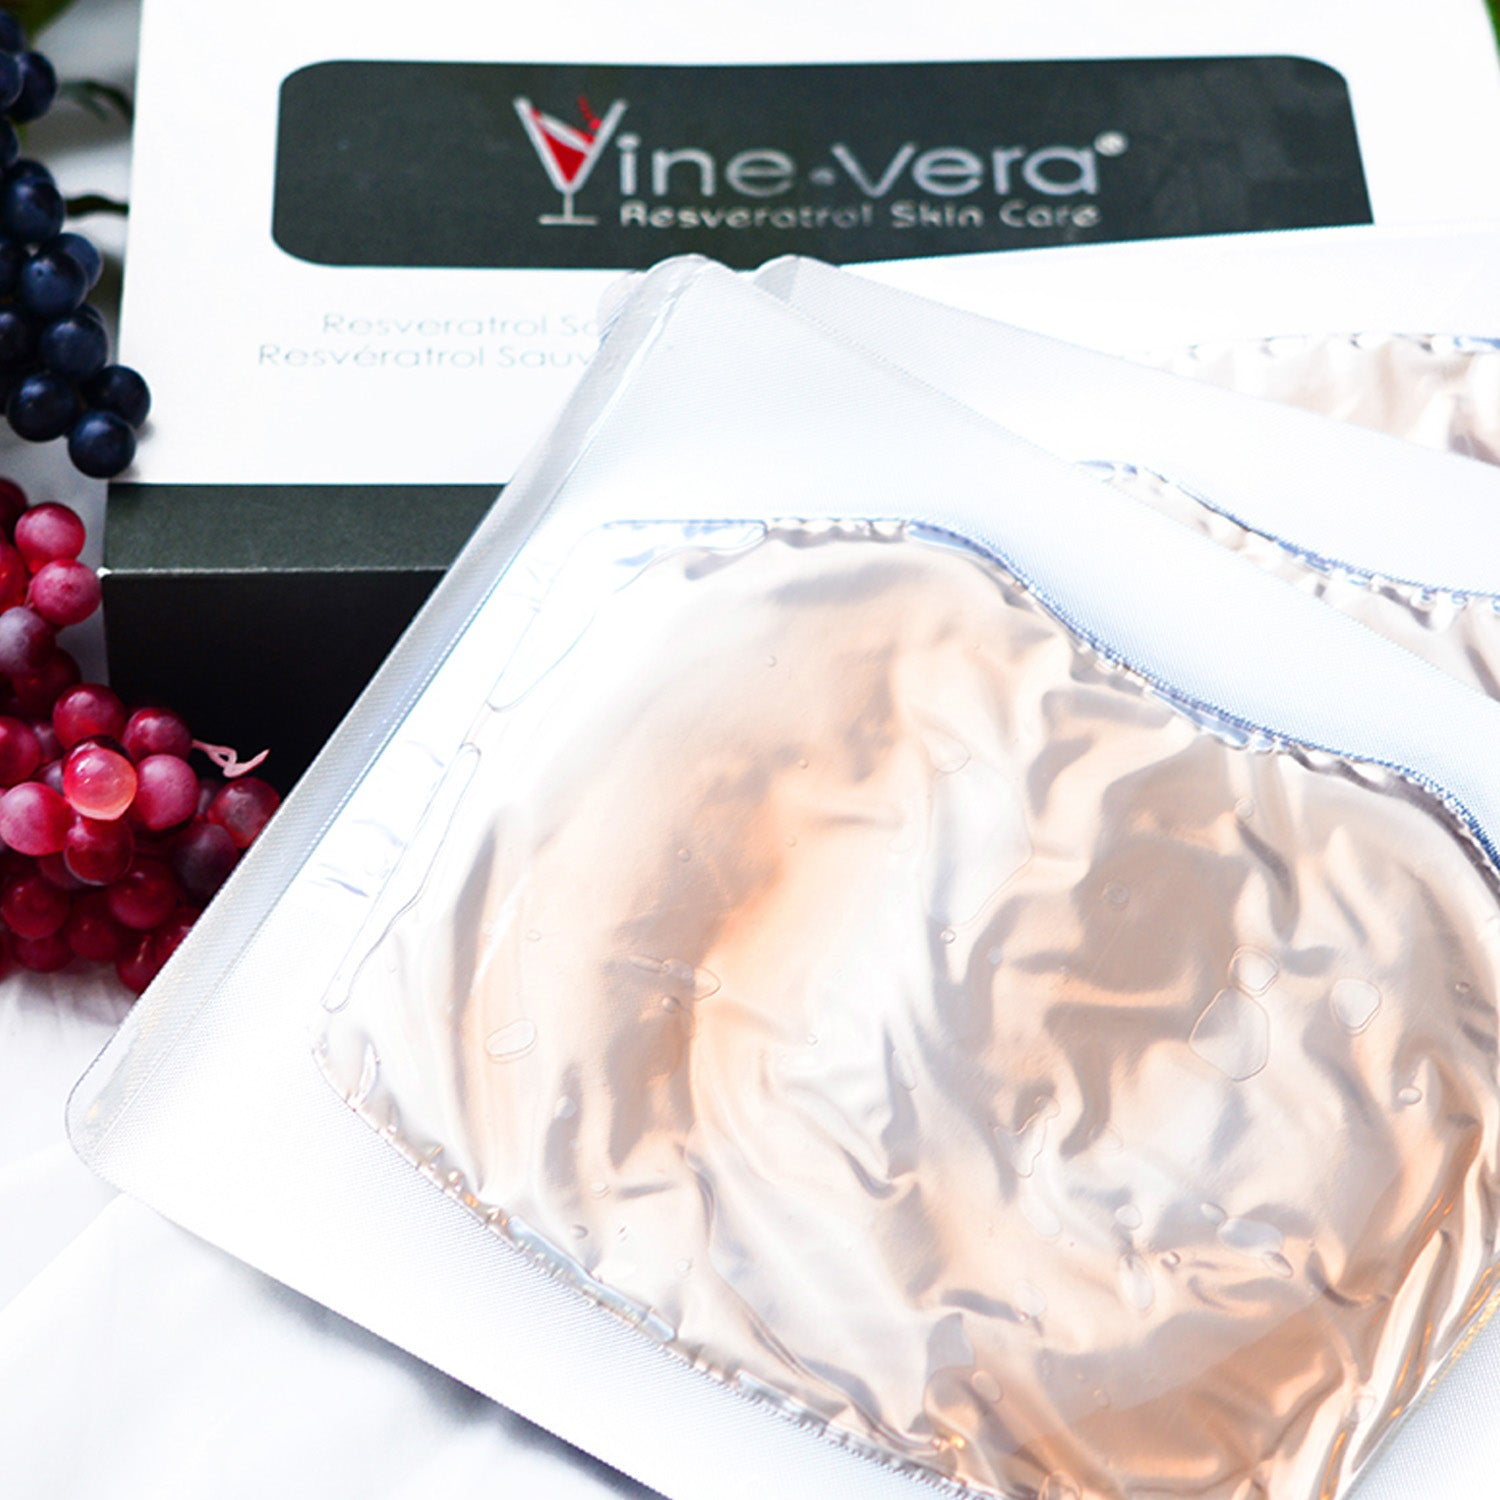 Vine Vera Neck Tightening Mask